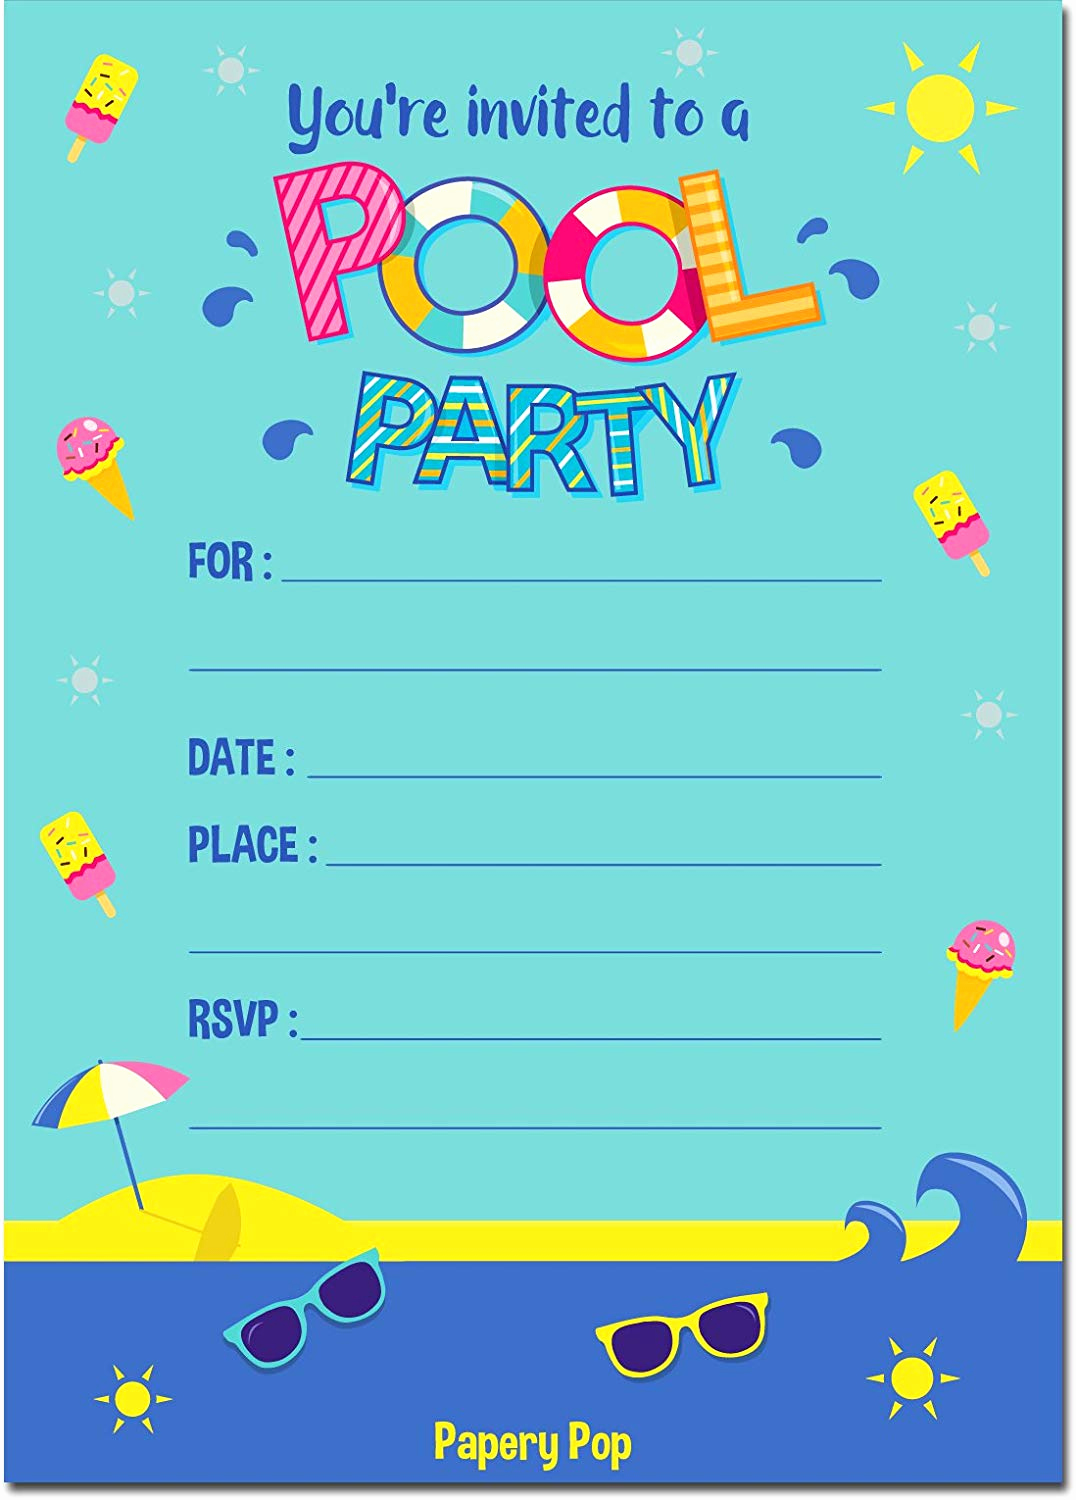 Pool Party Invites Templates Elegant Pool Party Invitations with Envelopes 15 Count Kids